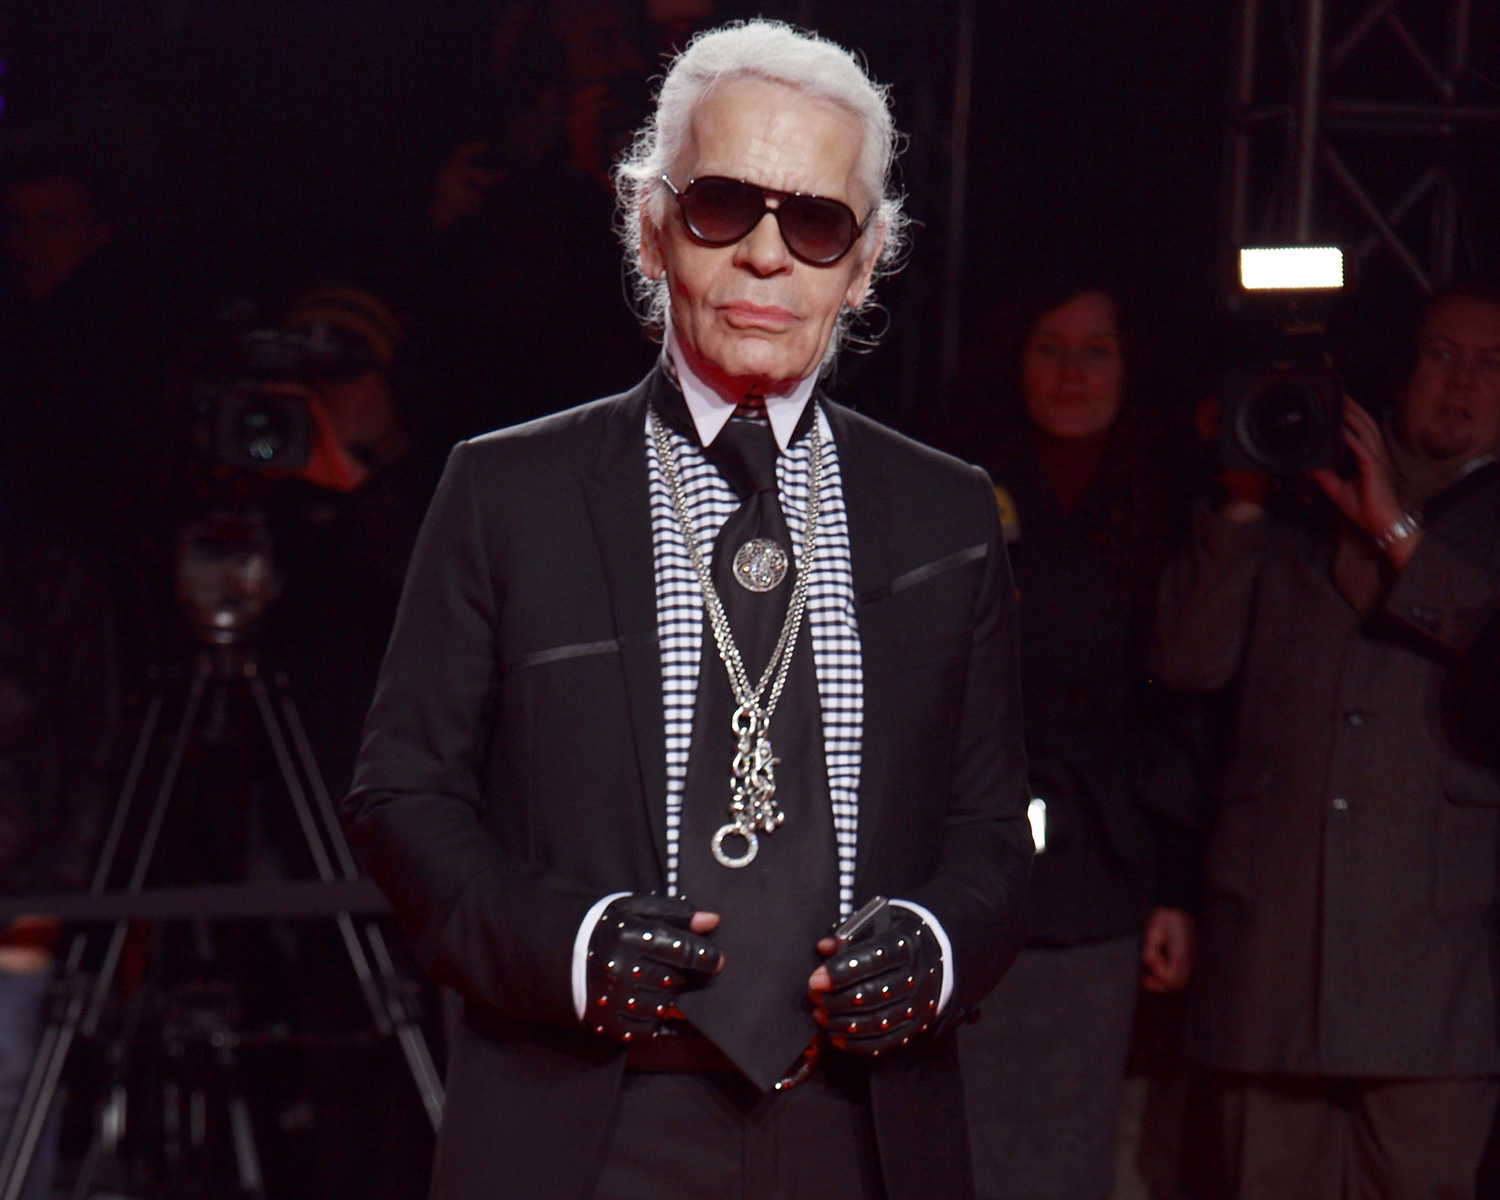 Karl Lagerfeld Dies: Looking Back at His Best Chanel Couture Wedding Dresses